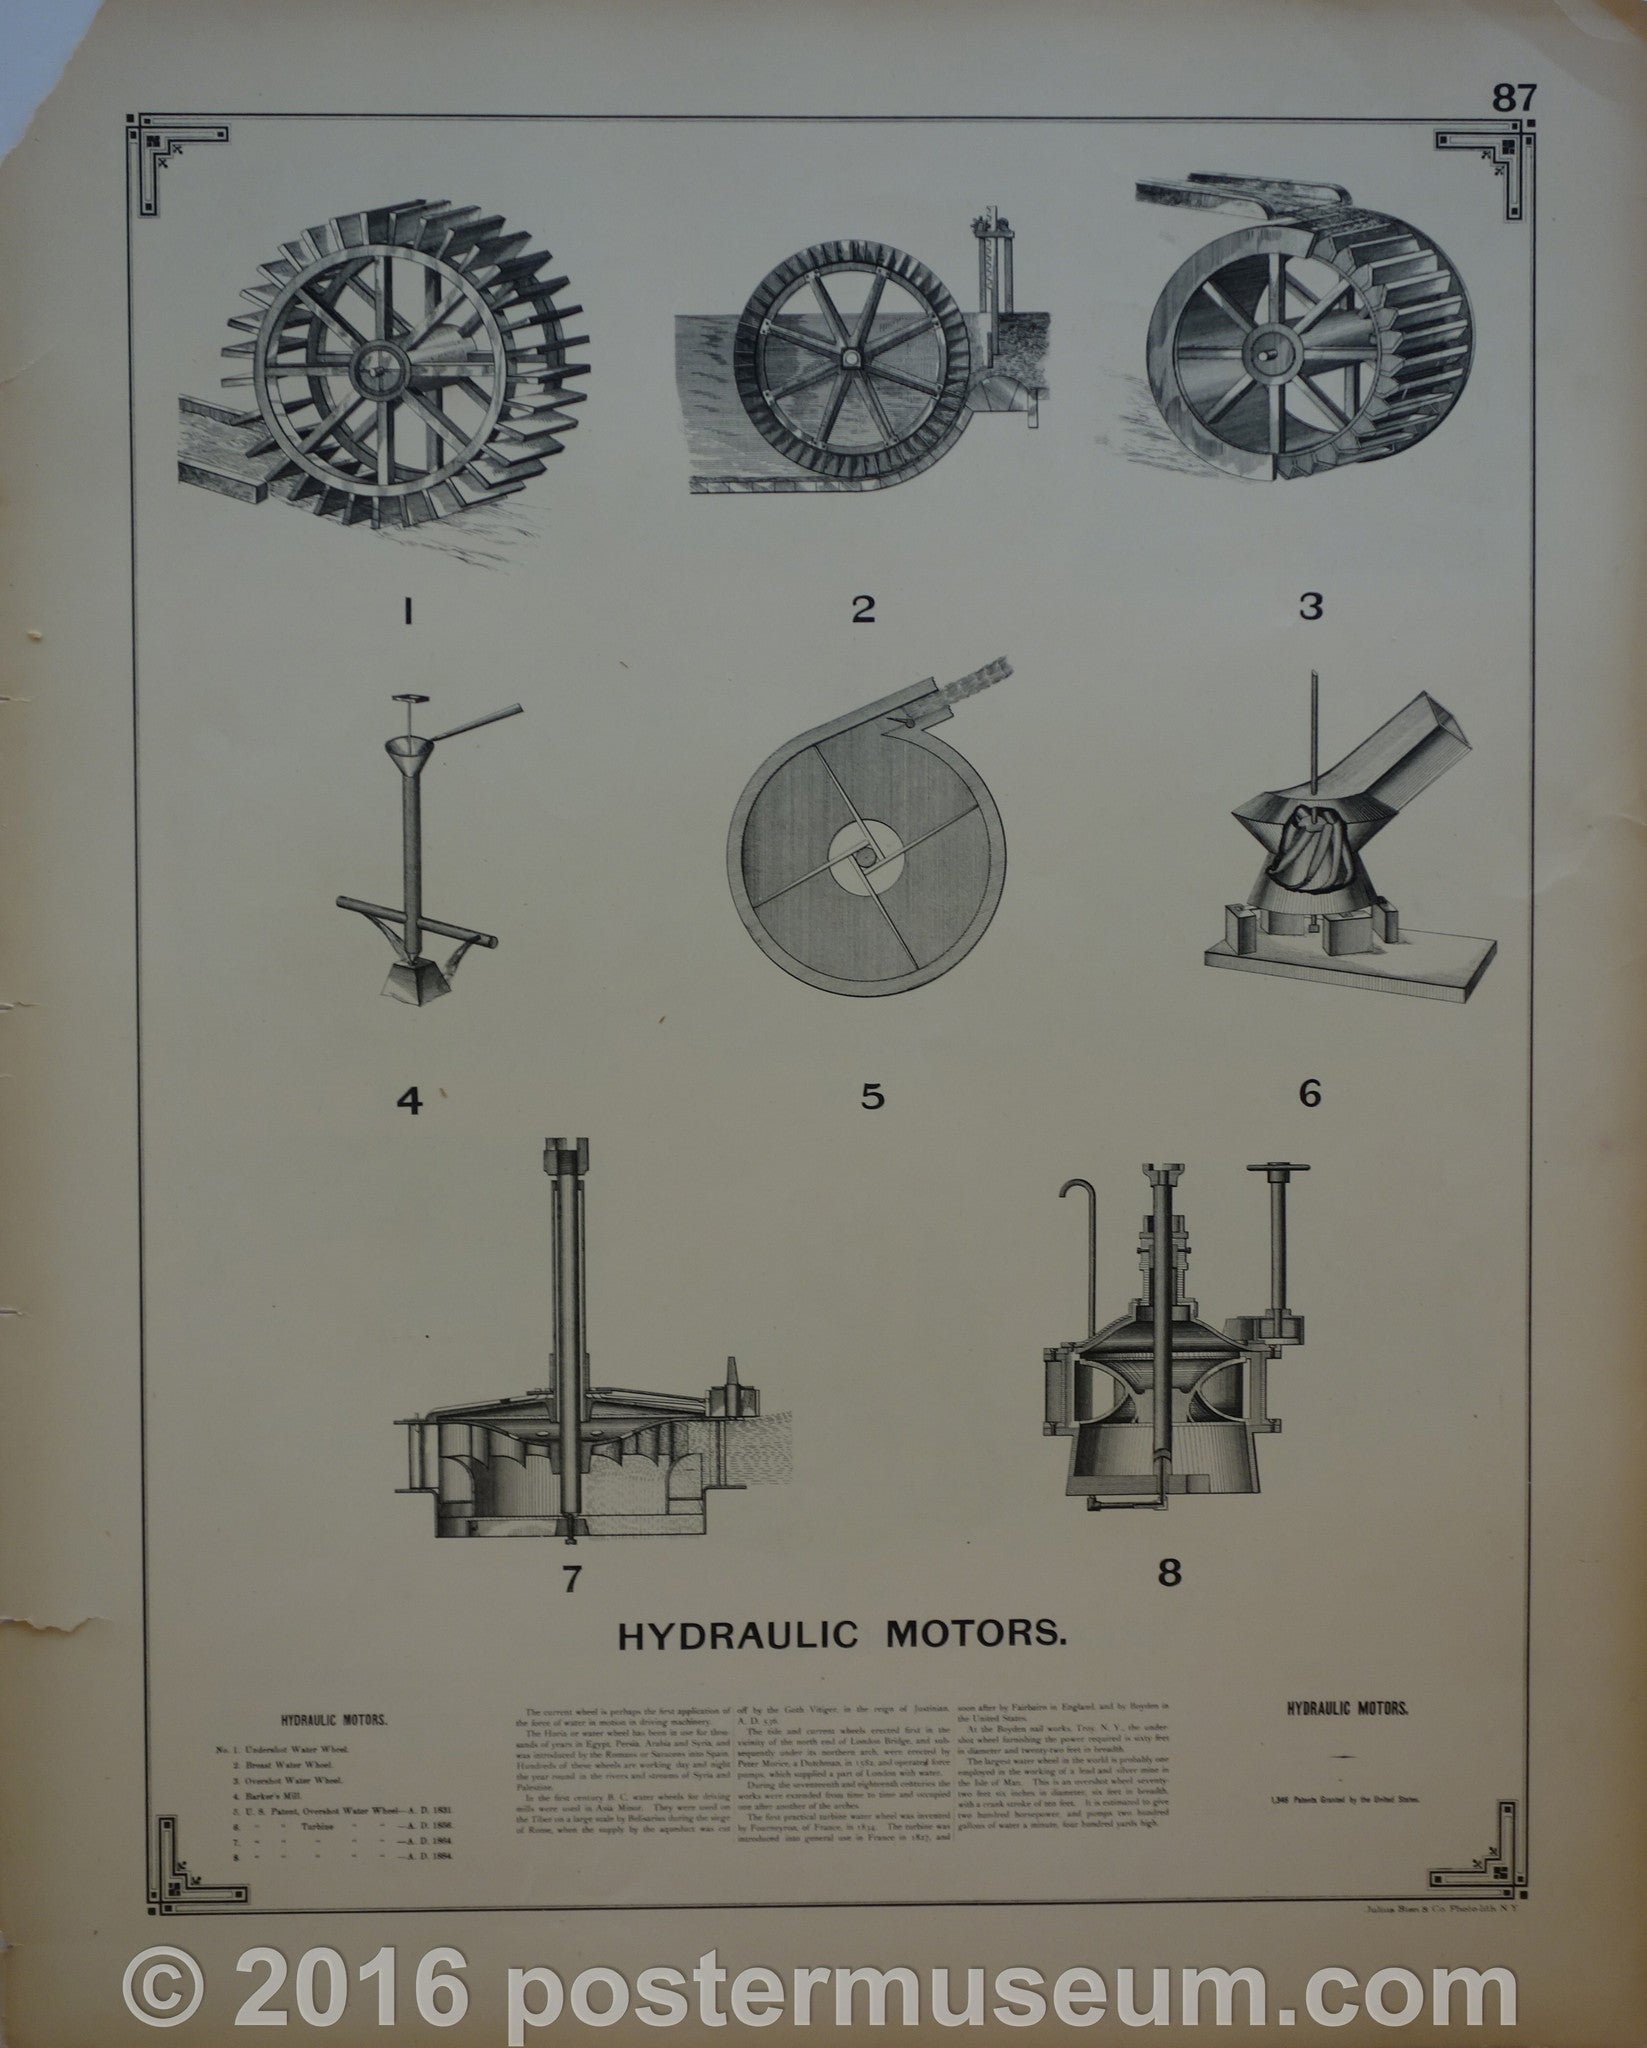 Hydraulic motors and Bread and cracker machines